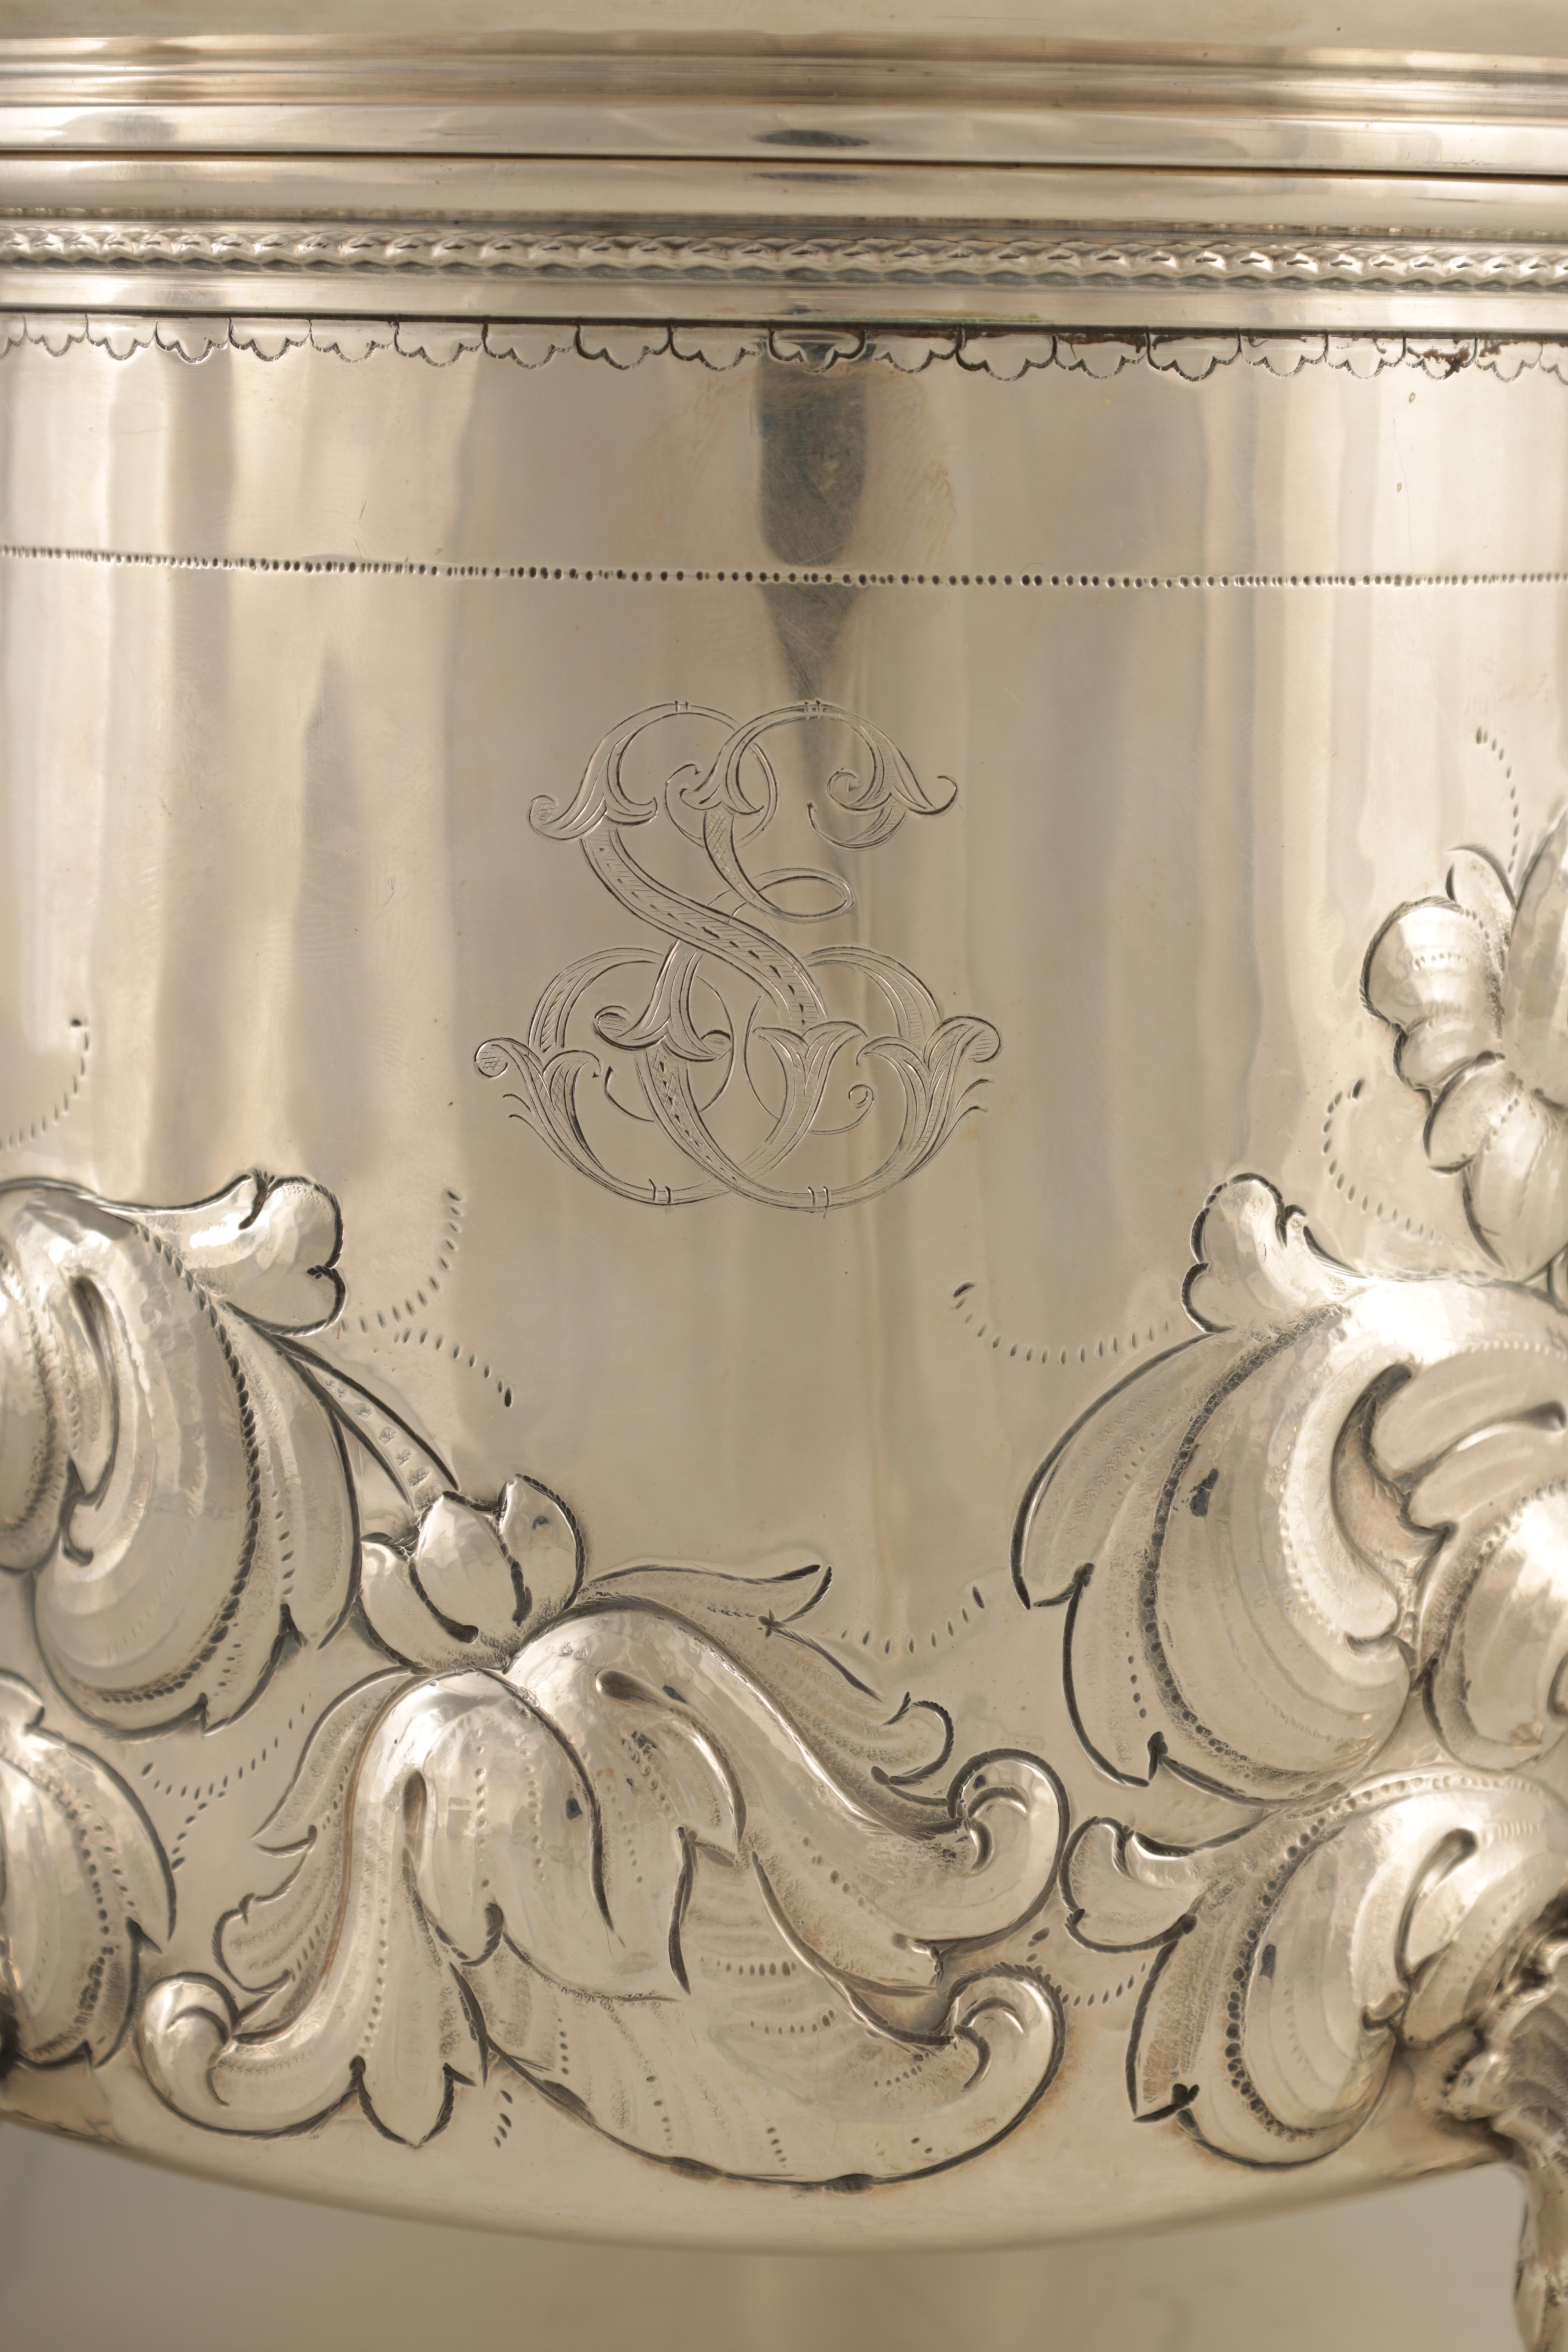 AN IMPRESSIVE EARLY 20TH CENTURY SWEDISH SILVER TANKARD with embossed ball finial to the hinged - Image 7 of 8